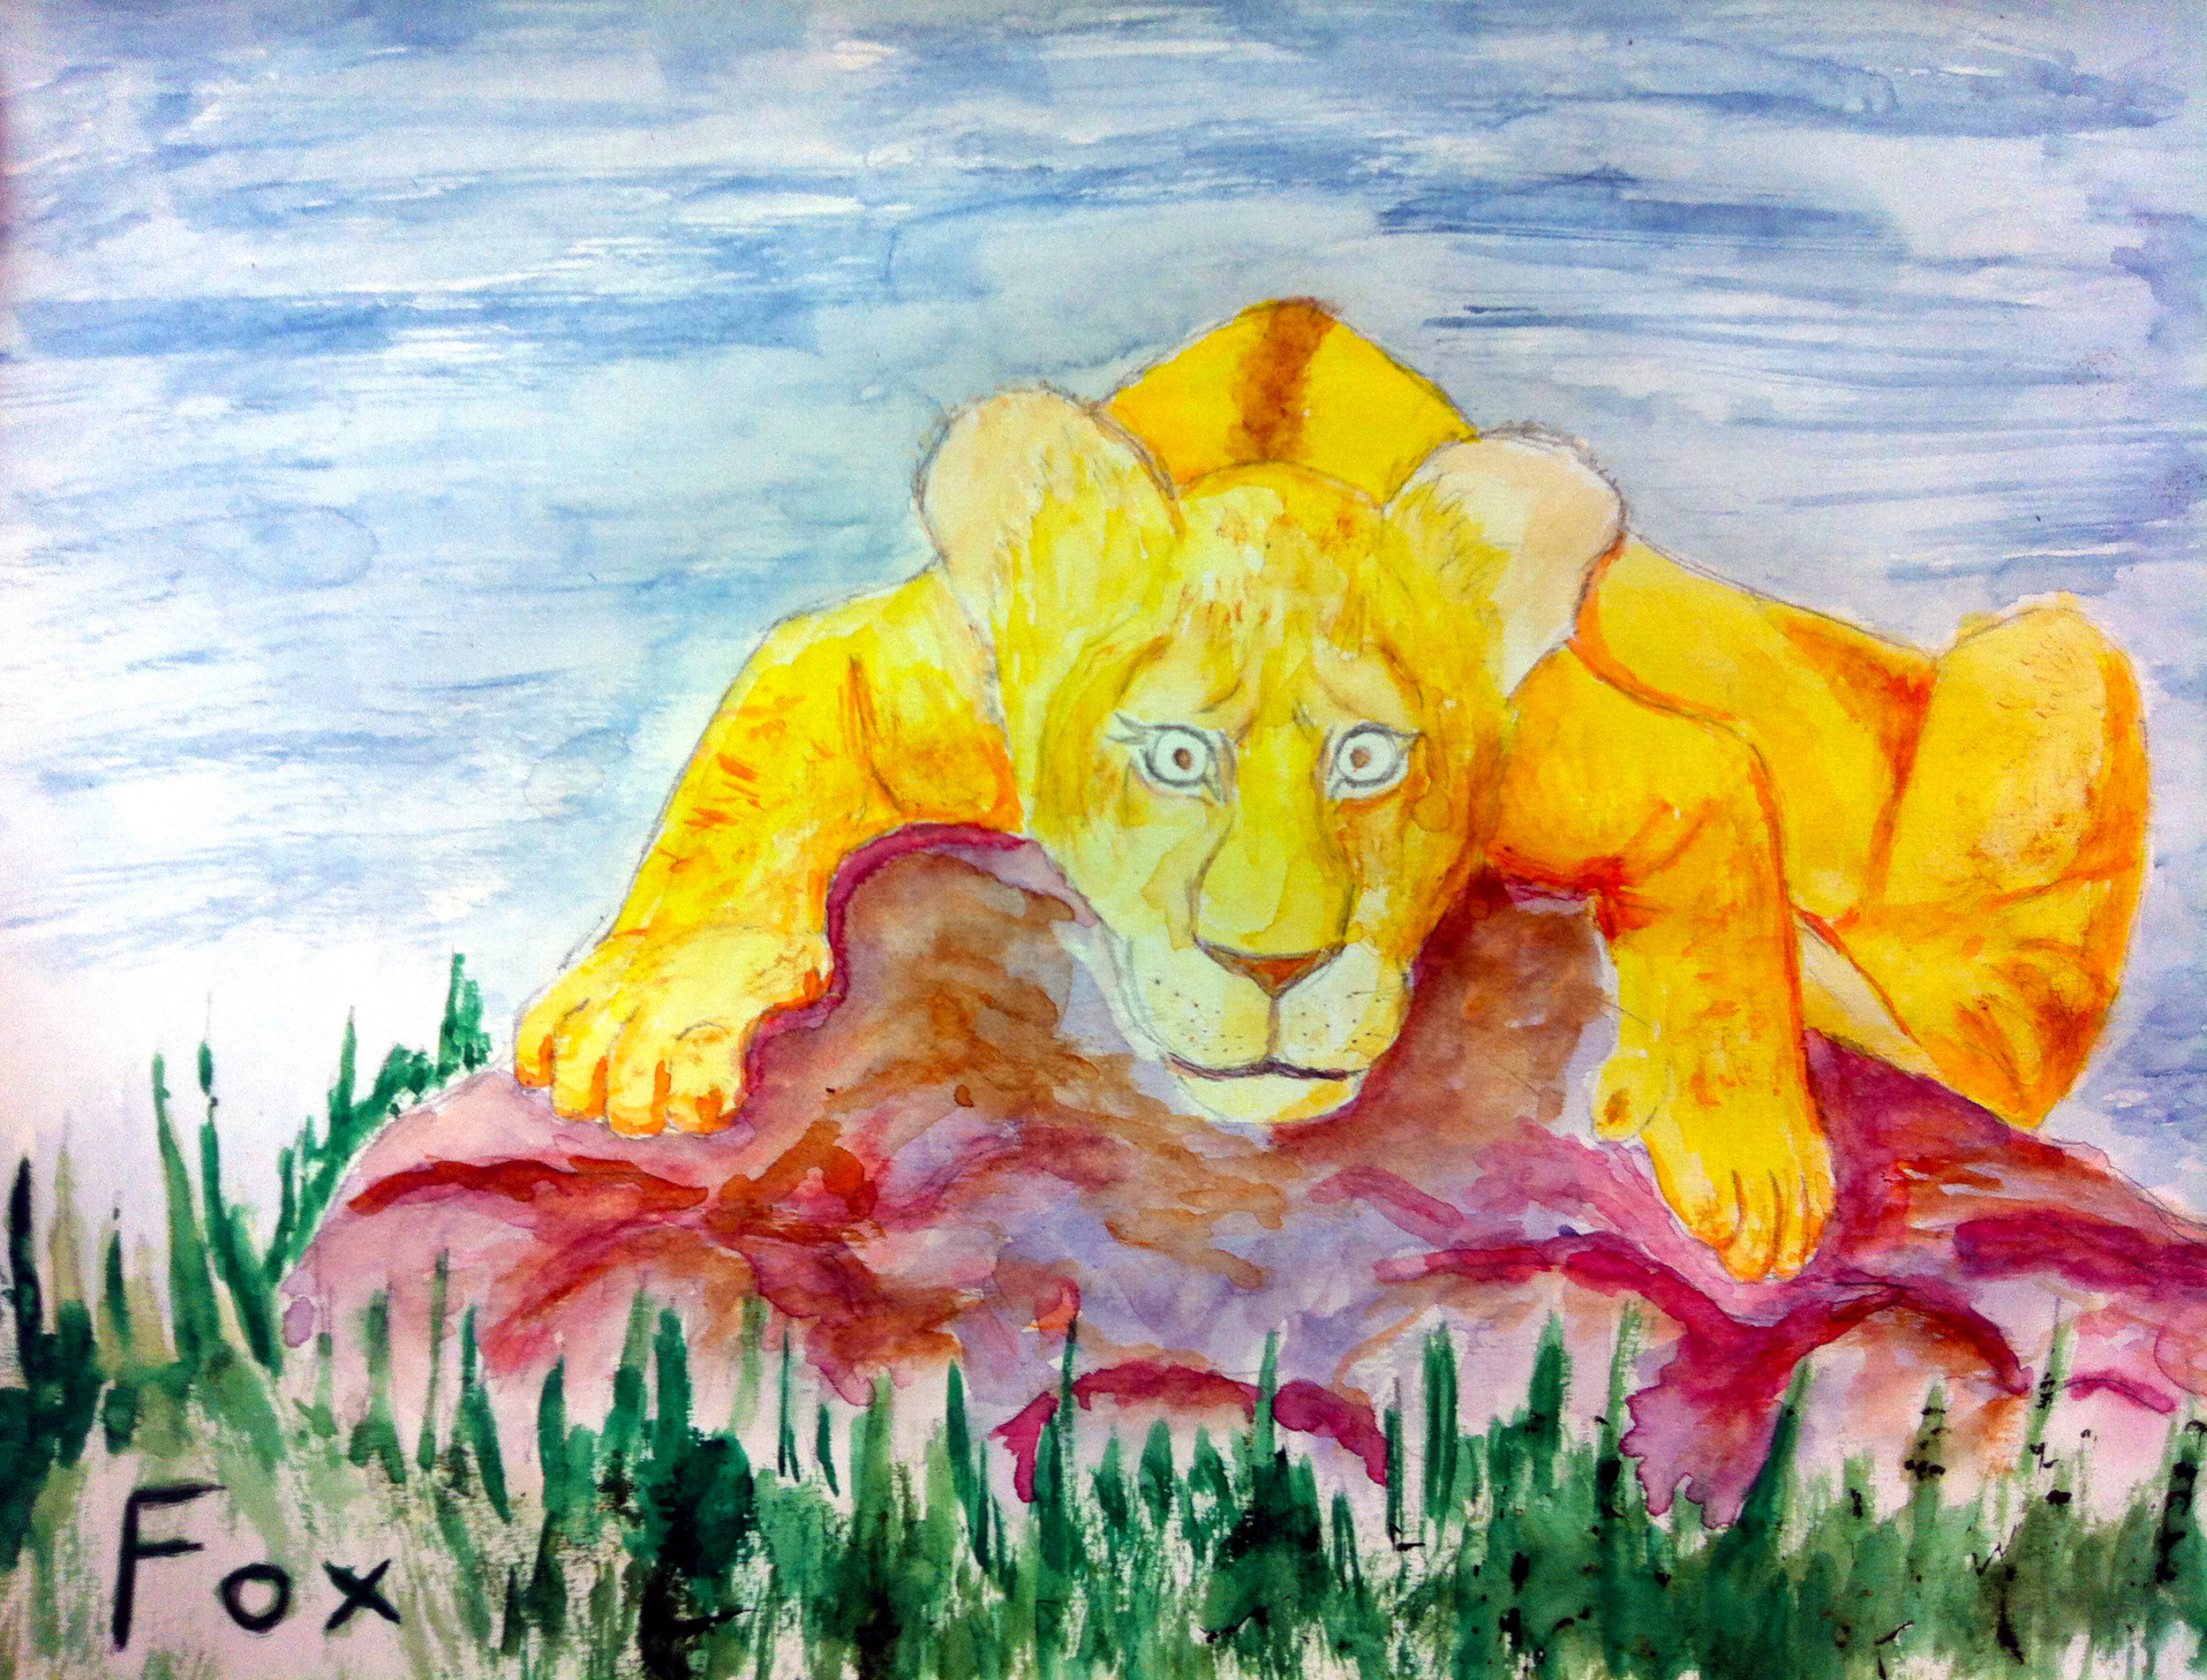 Lion On A Hot Day - This little watercolor lion, resting in the sun.Pencil with Watercolor fill.